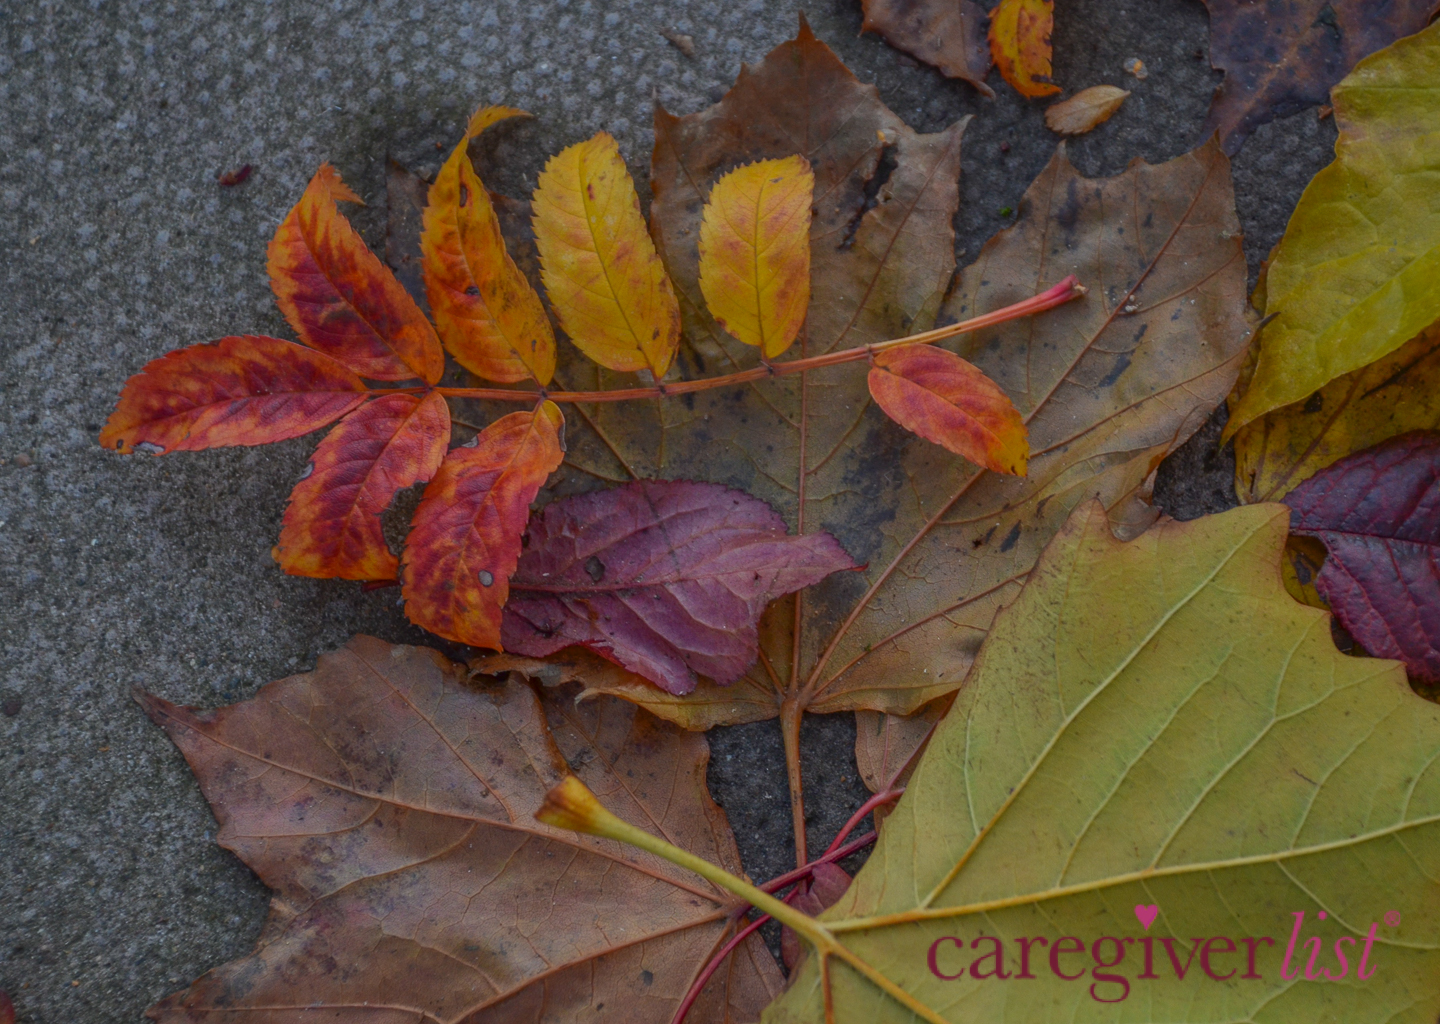 Autumn Leaves in London: Stress Relief Photo